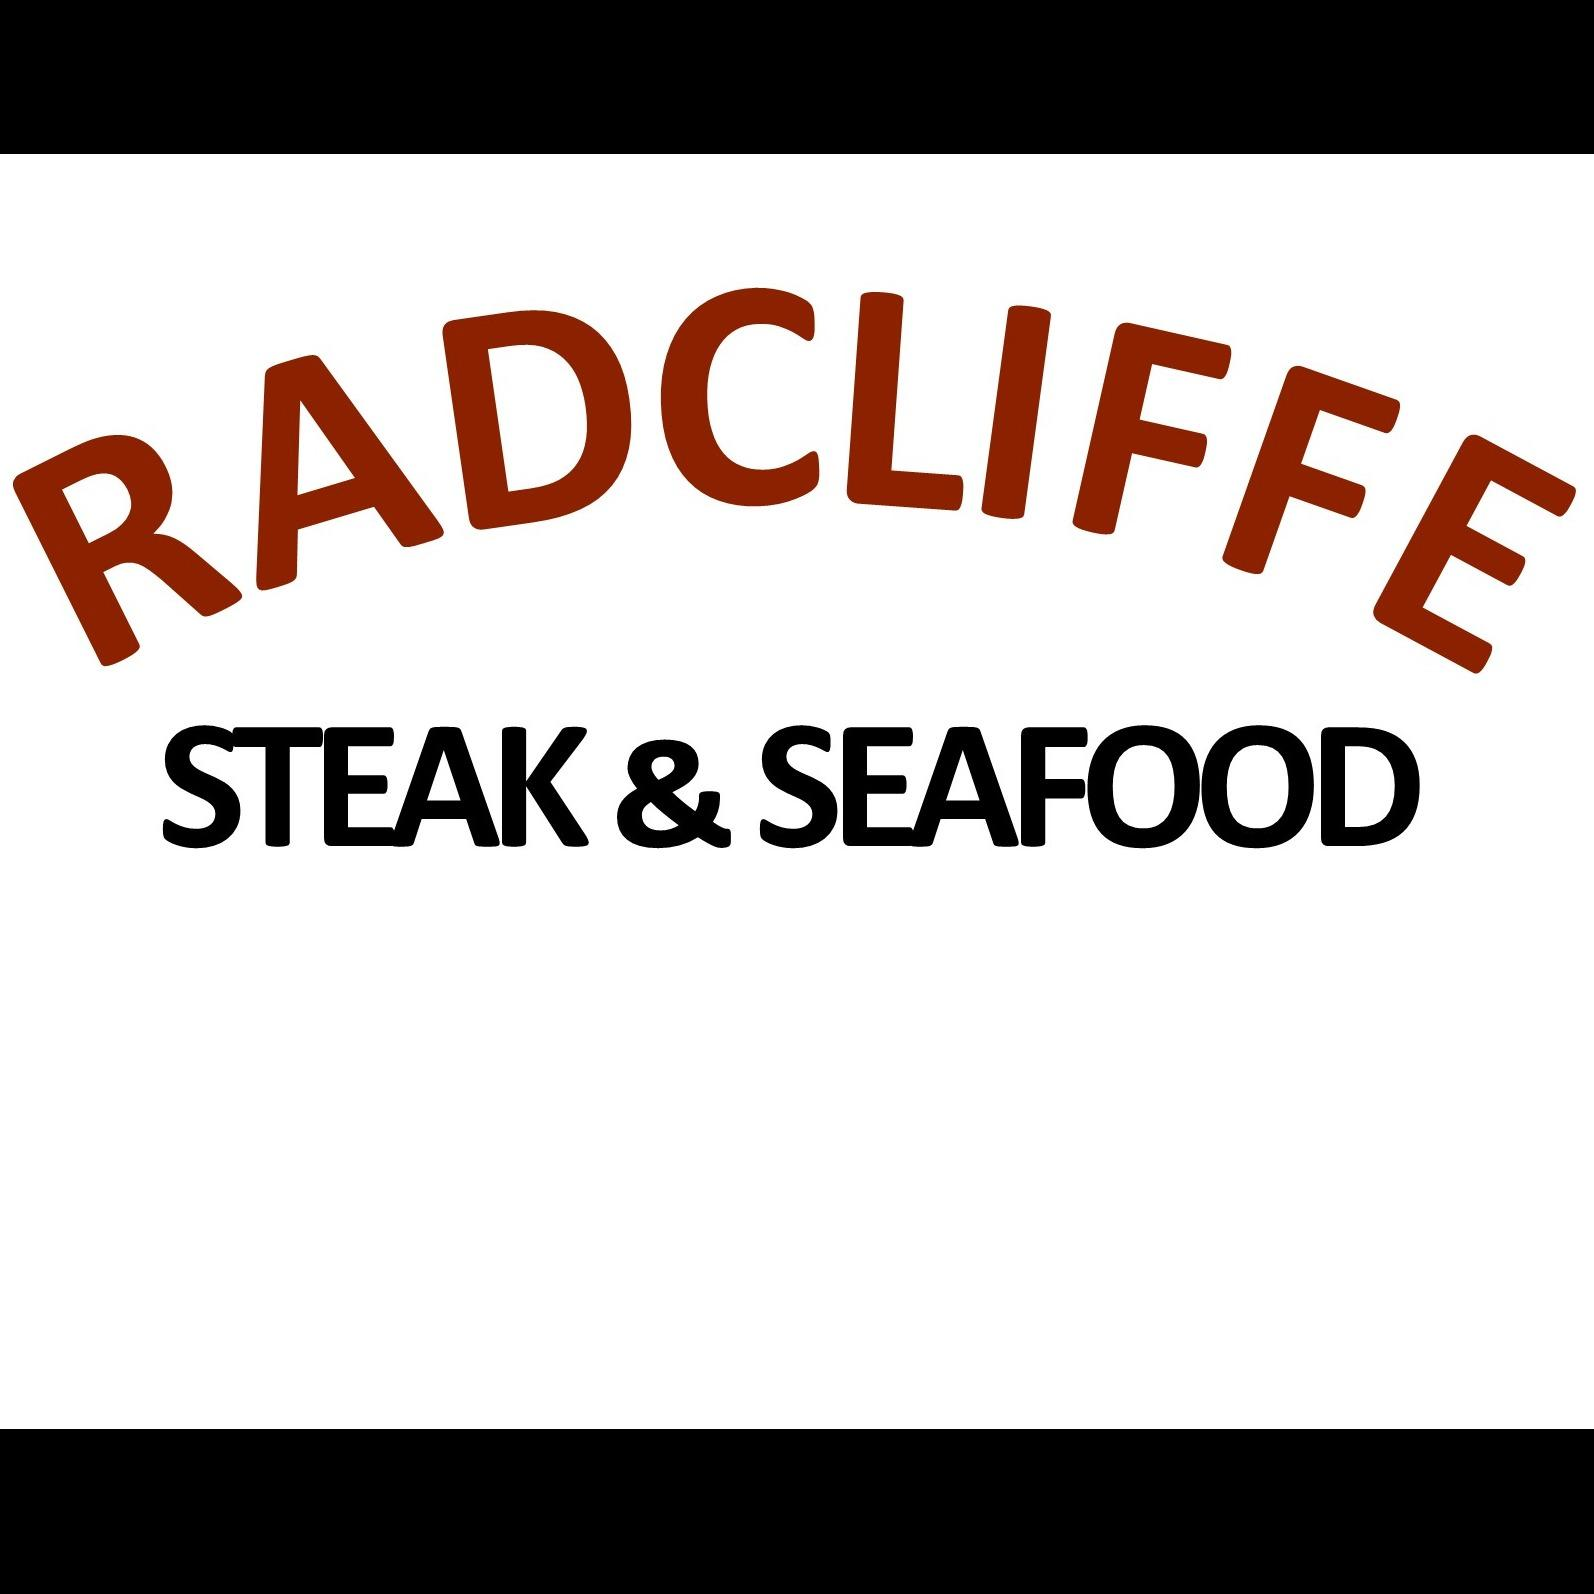 Radcliffe Steak and Seafood